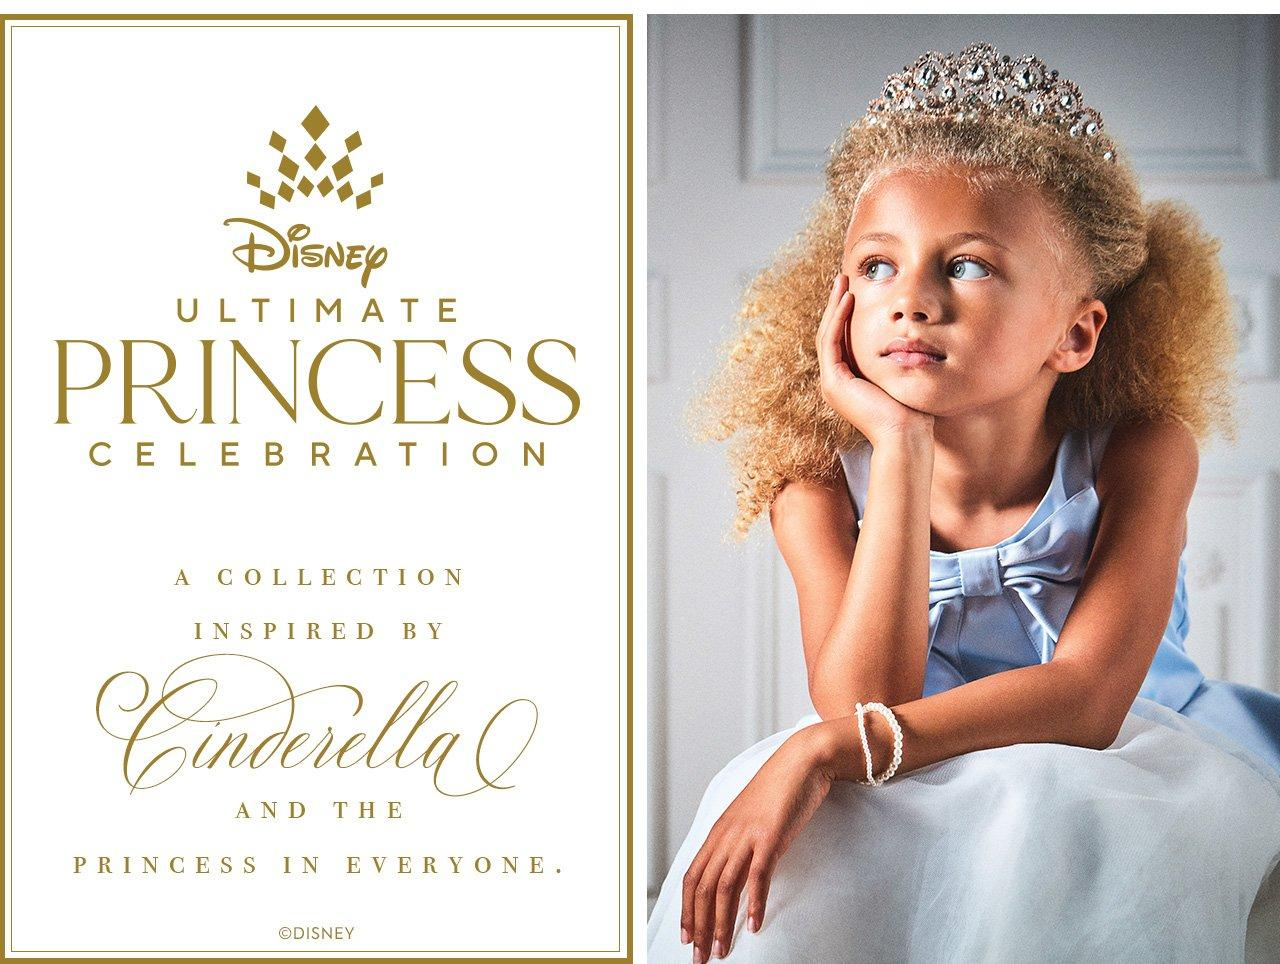 Disney Ultimate Princess Celebrations. A collection inspired by Cinderella and the princess in everyone.